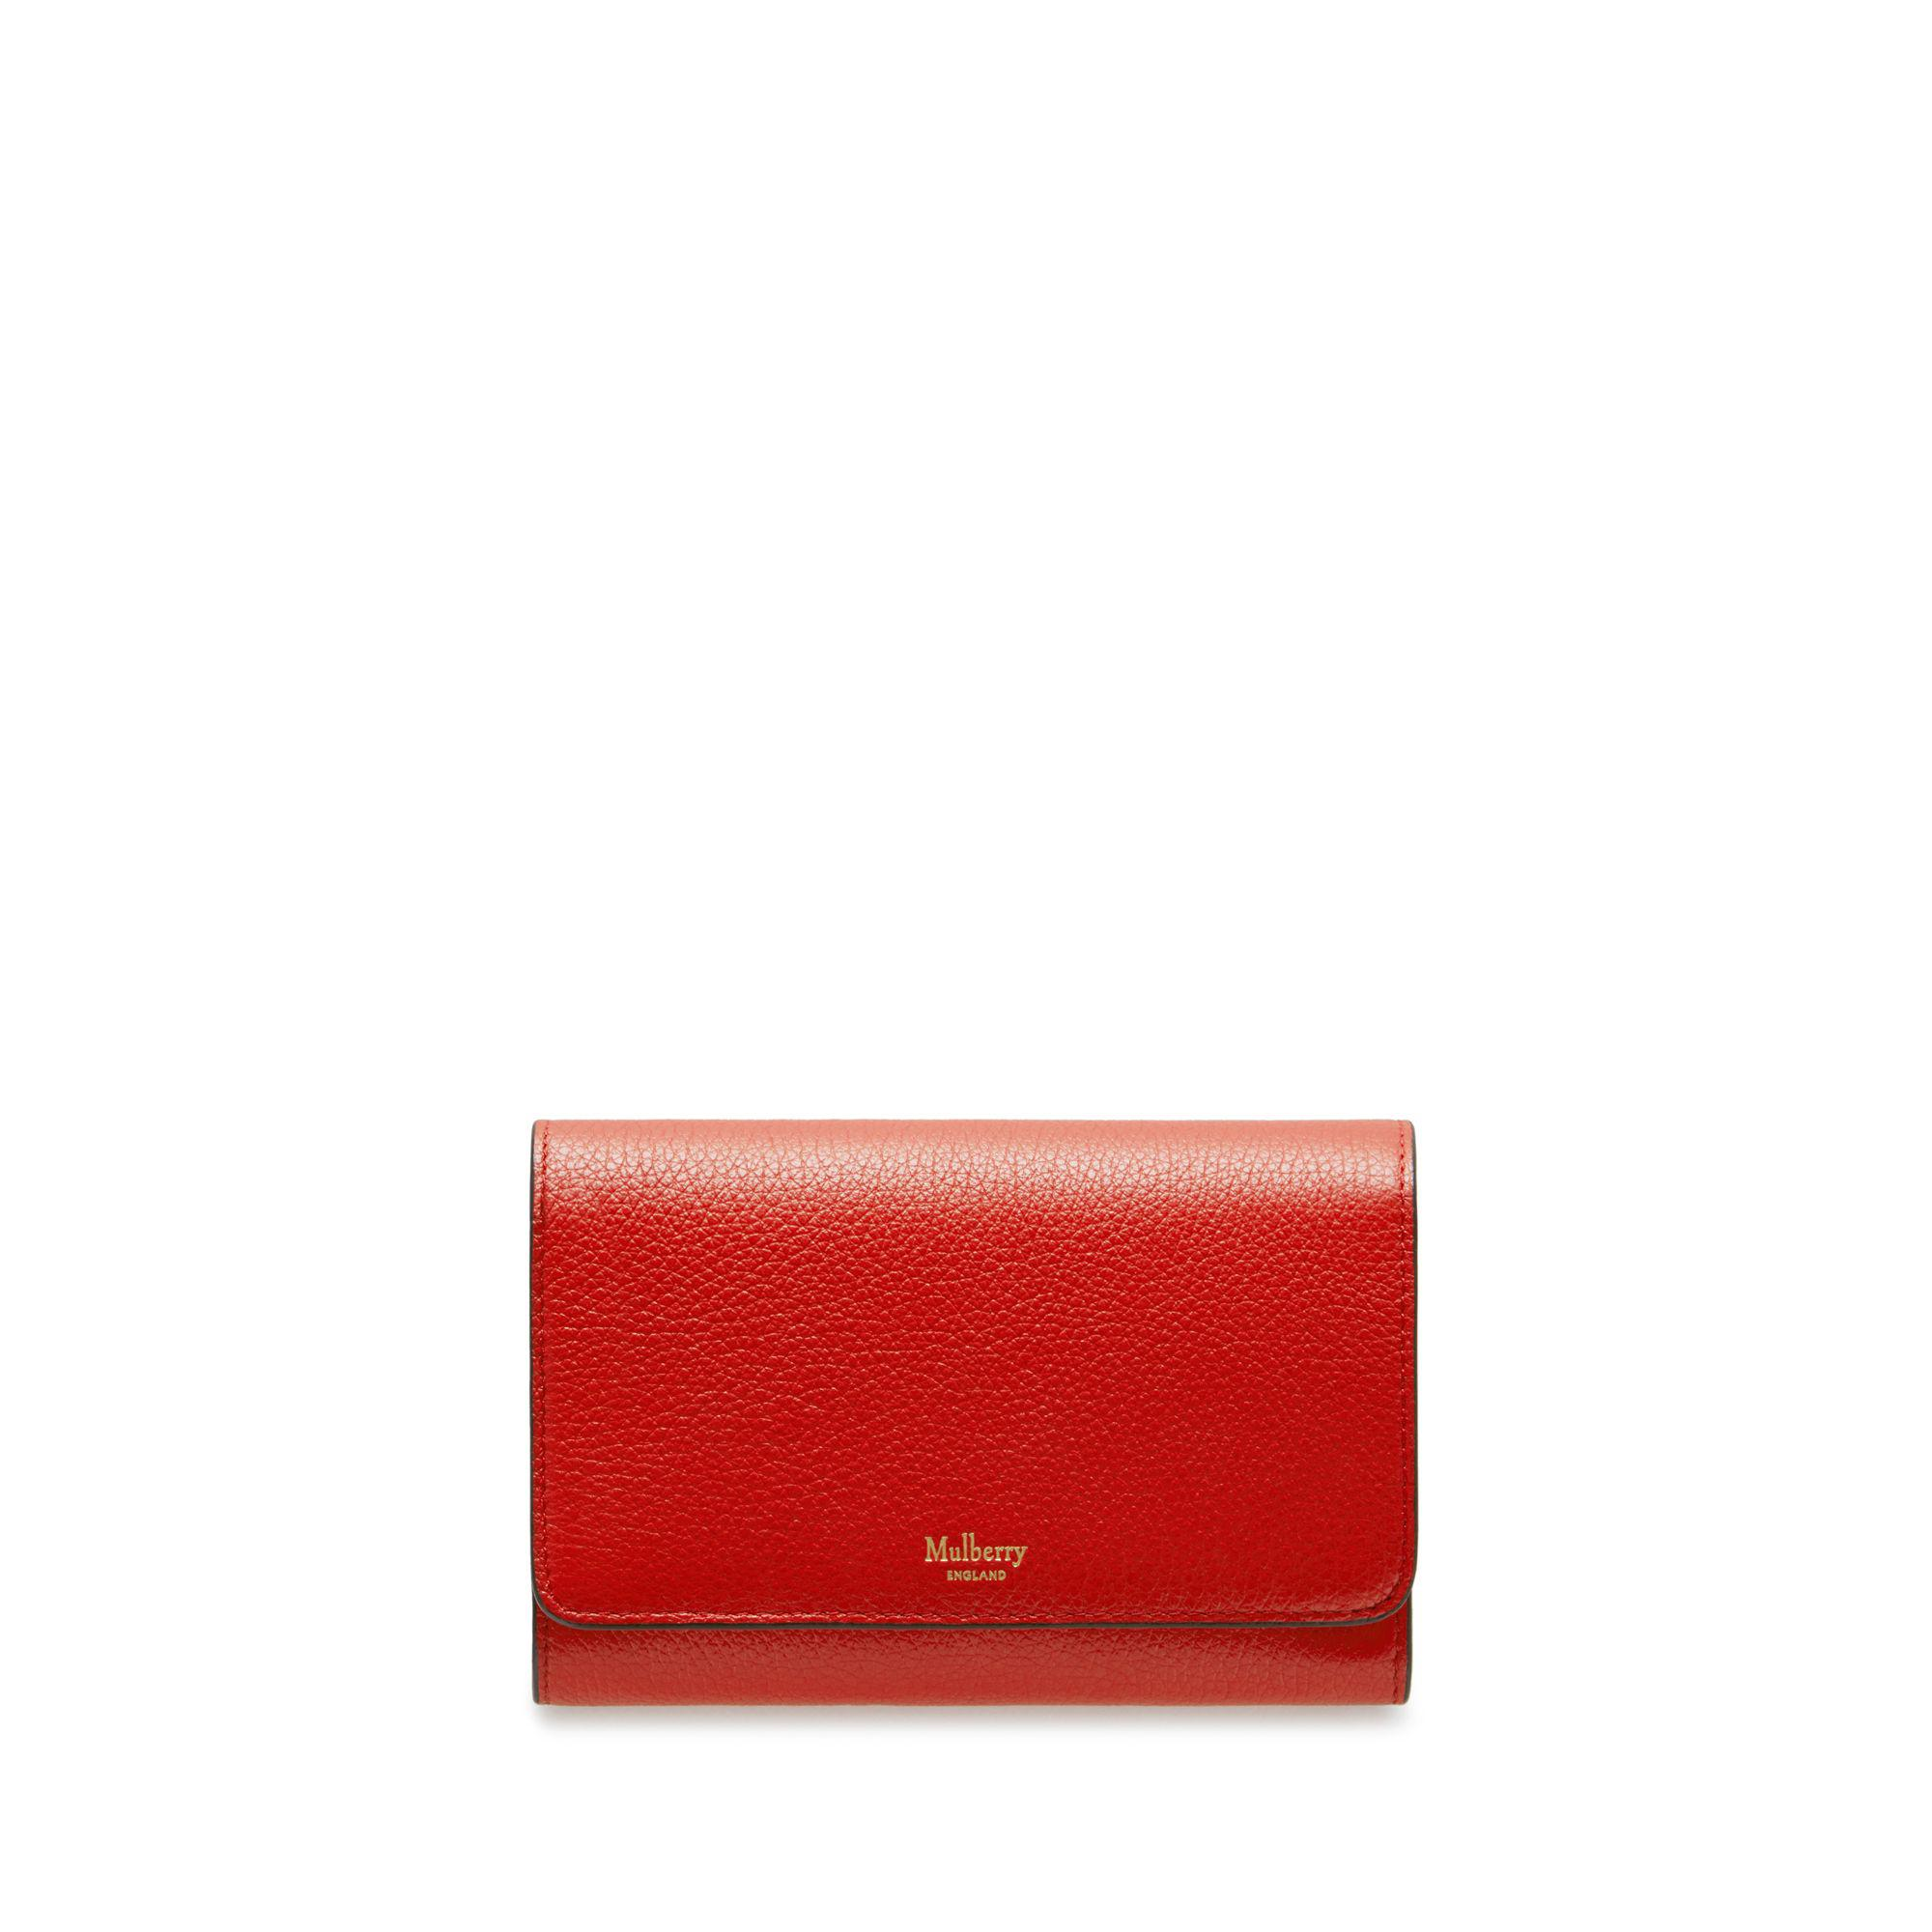 817a844e9a Women S Wallets Small Leather Goods Mulberry. Gallery. Lyst Mulberry Medium  Continental French Purse In Hibiscus Red